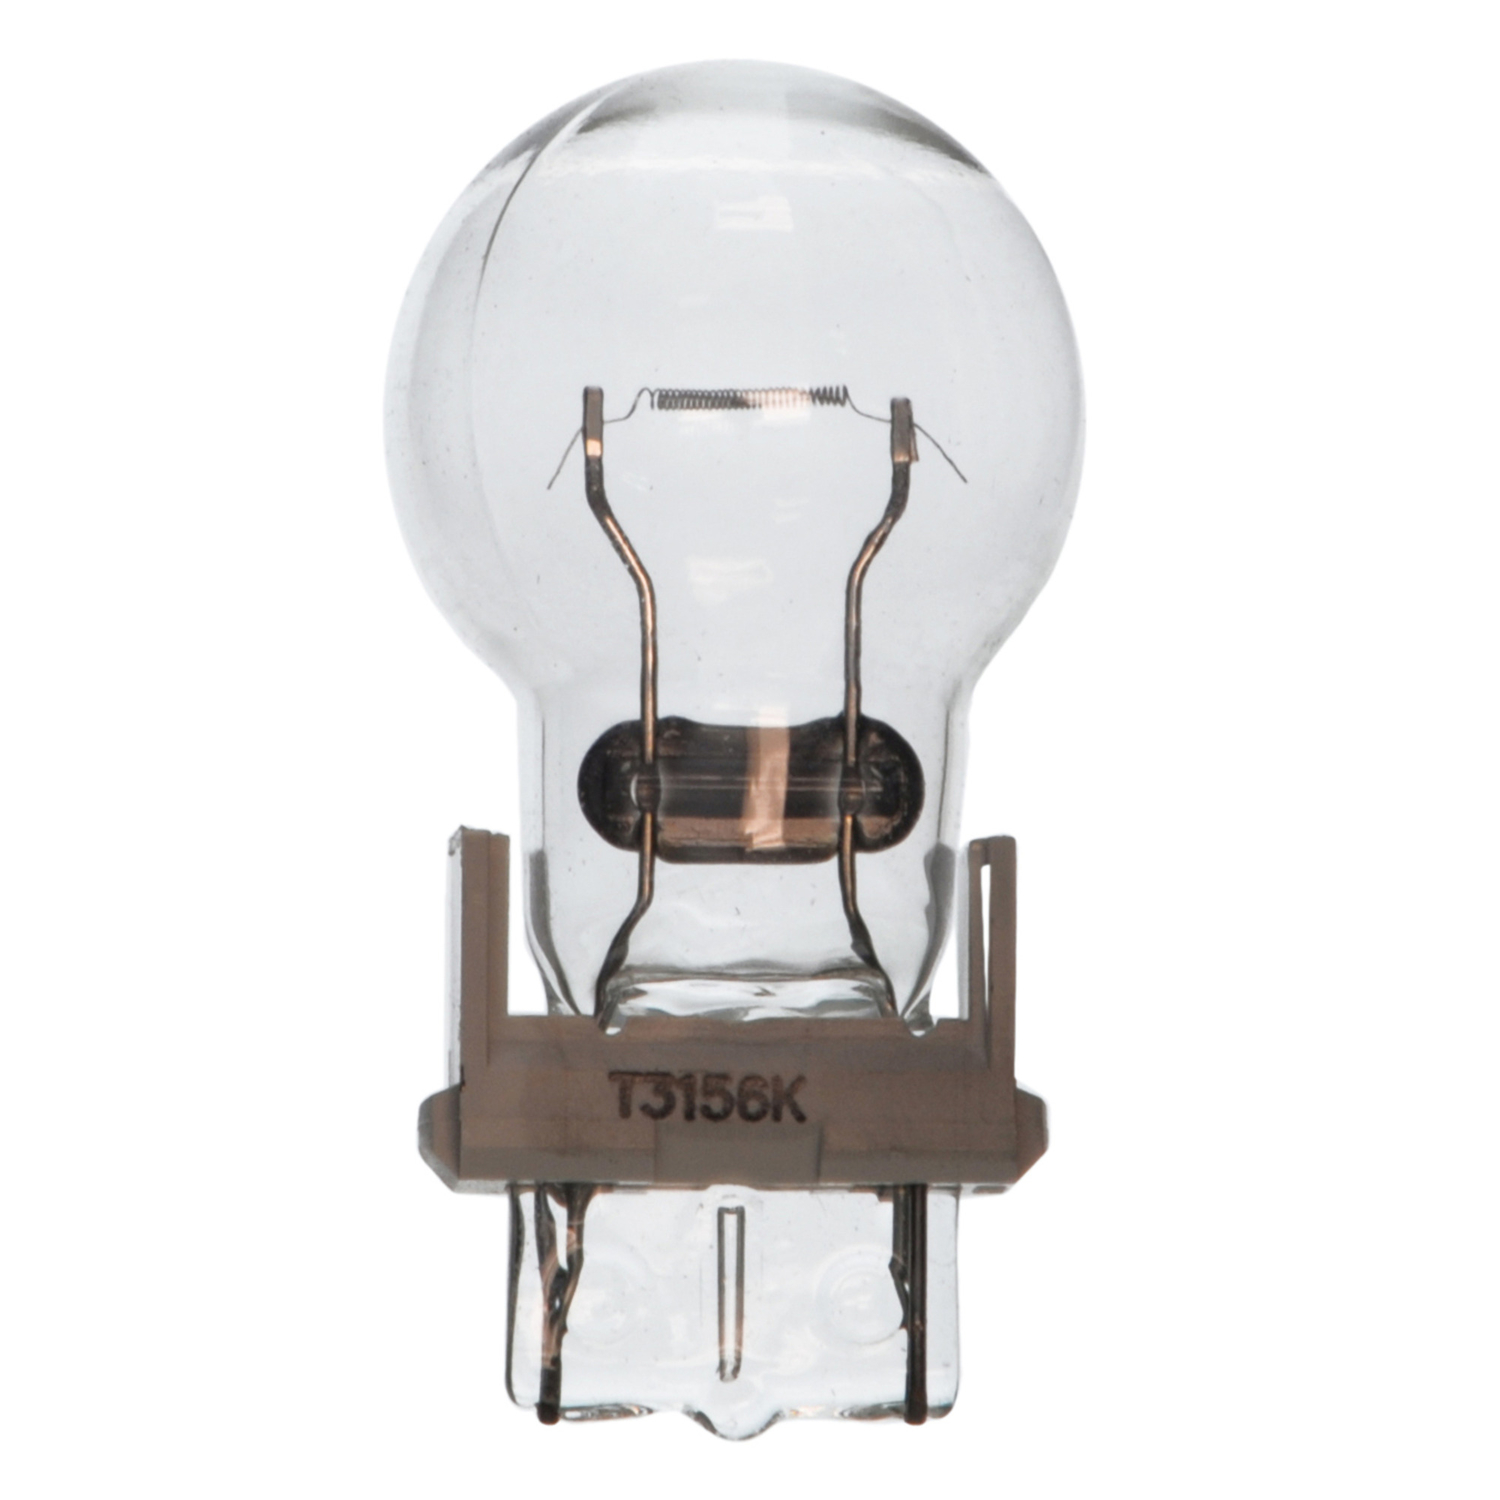 WAGNER LIGHTING - Cornering Light Bulb - WLP 3156LL